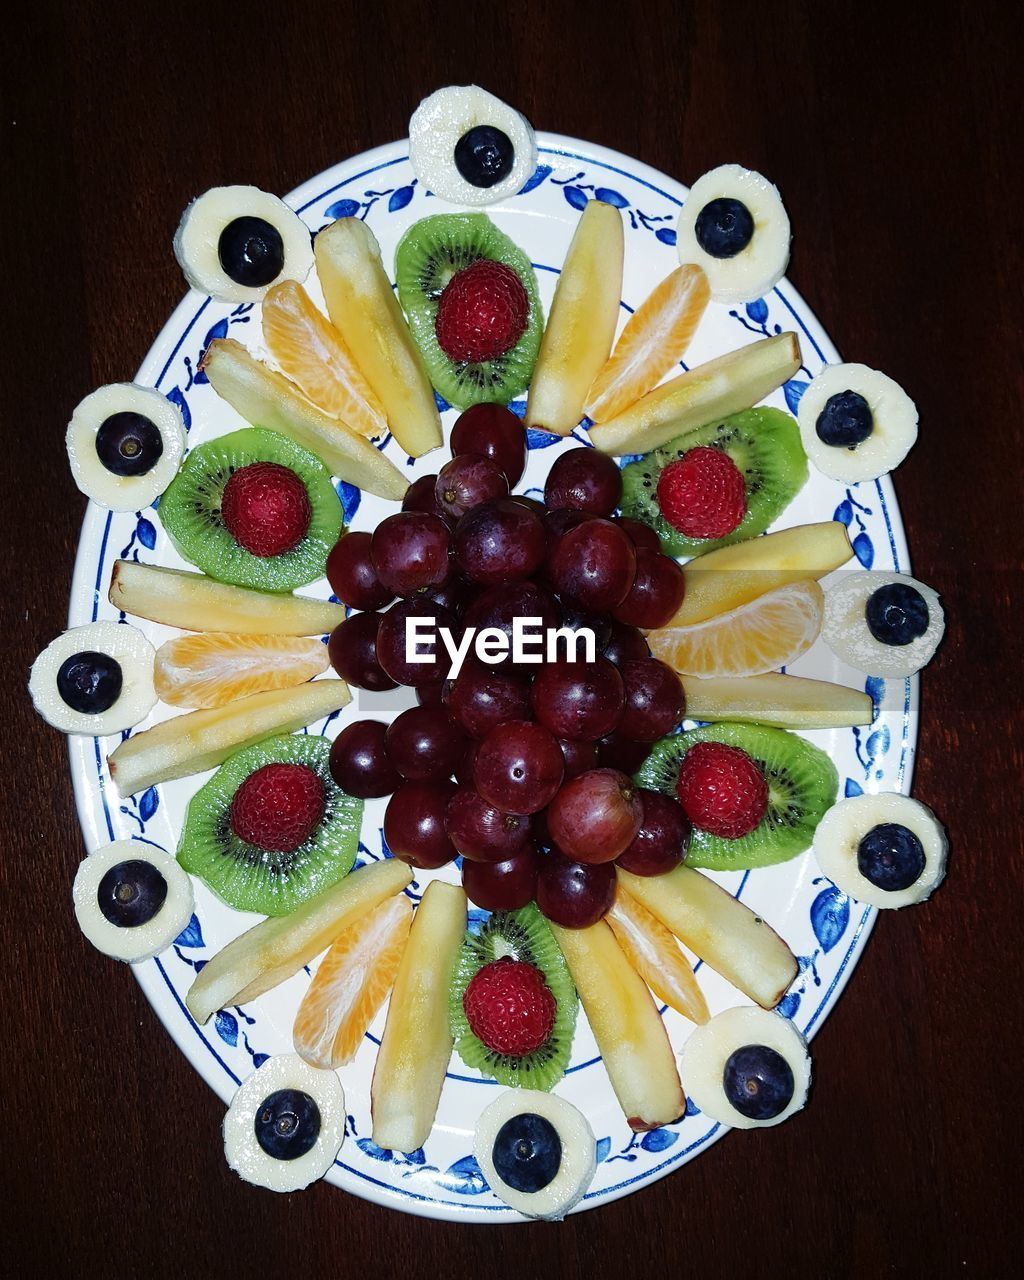 fruit, food and drink, blueberry, food, berry fruit, kiwi - fruit, strawberry, freshness, healthy eating, slice, still life, kiwi, banana, variation, close-up, ready-to-eat, high angle view, table, no people, indoors, raspberry, grape, directly above, dessert, garnish